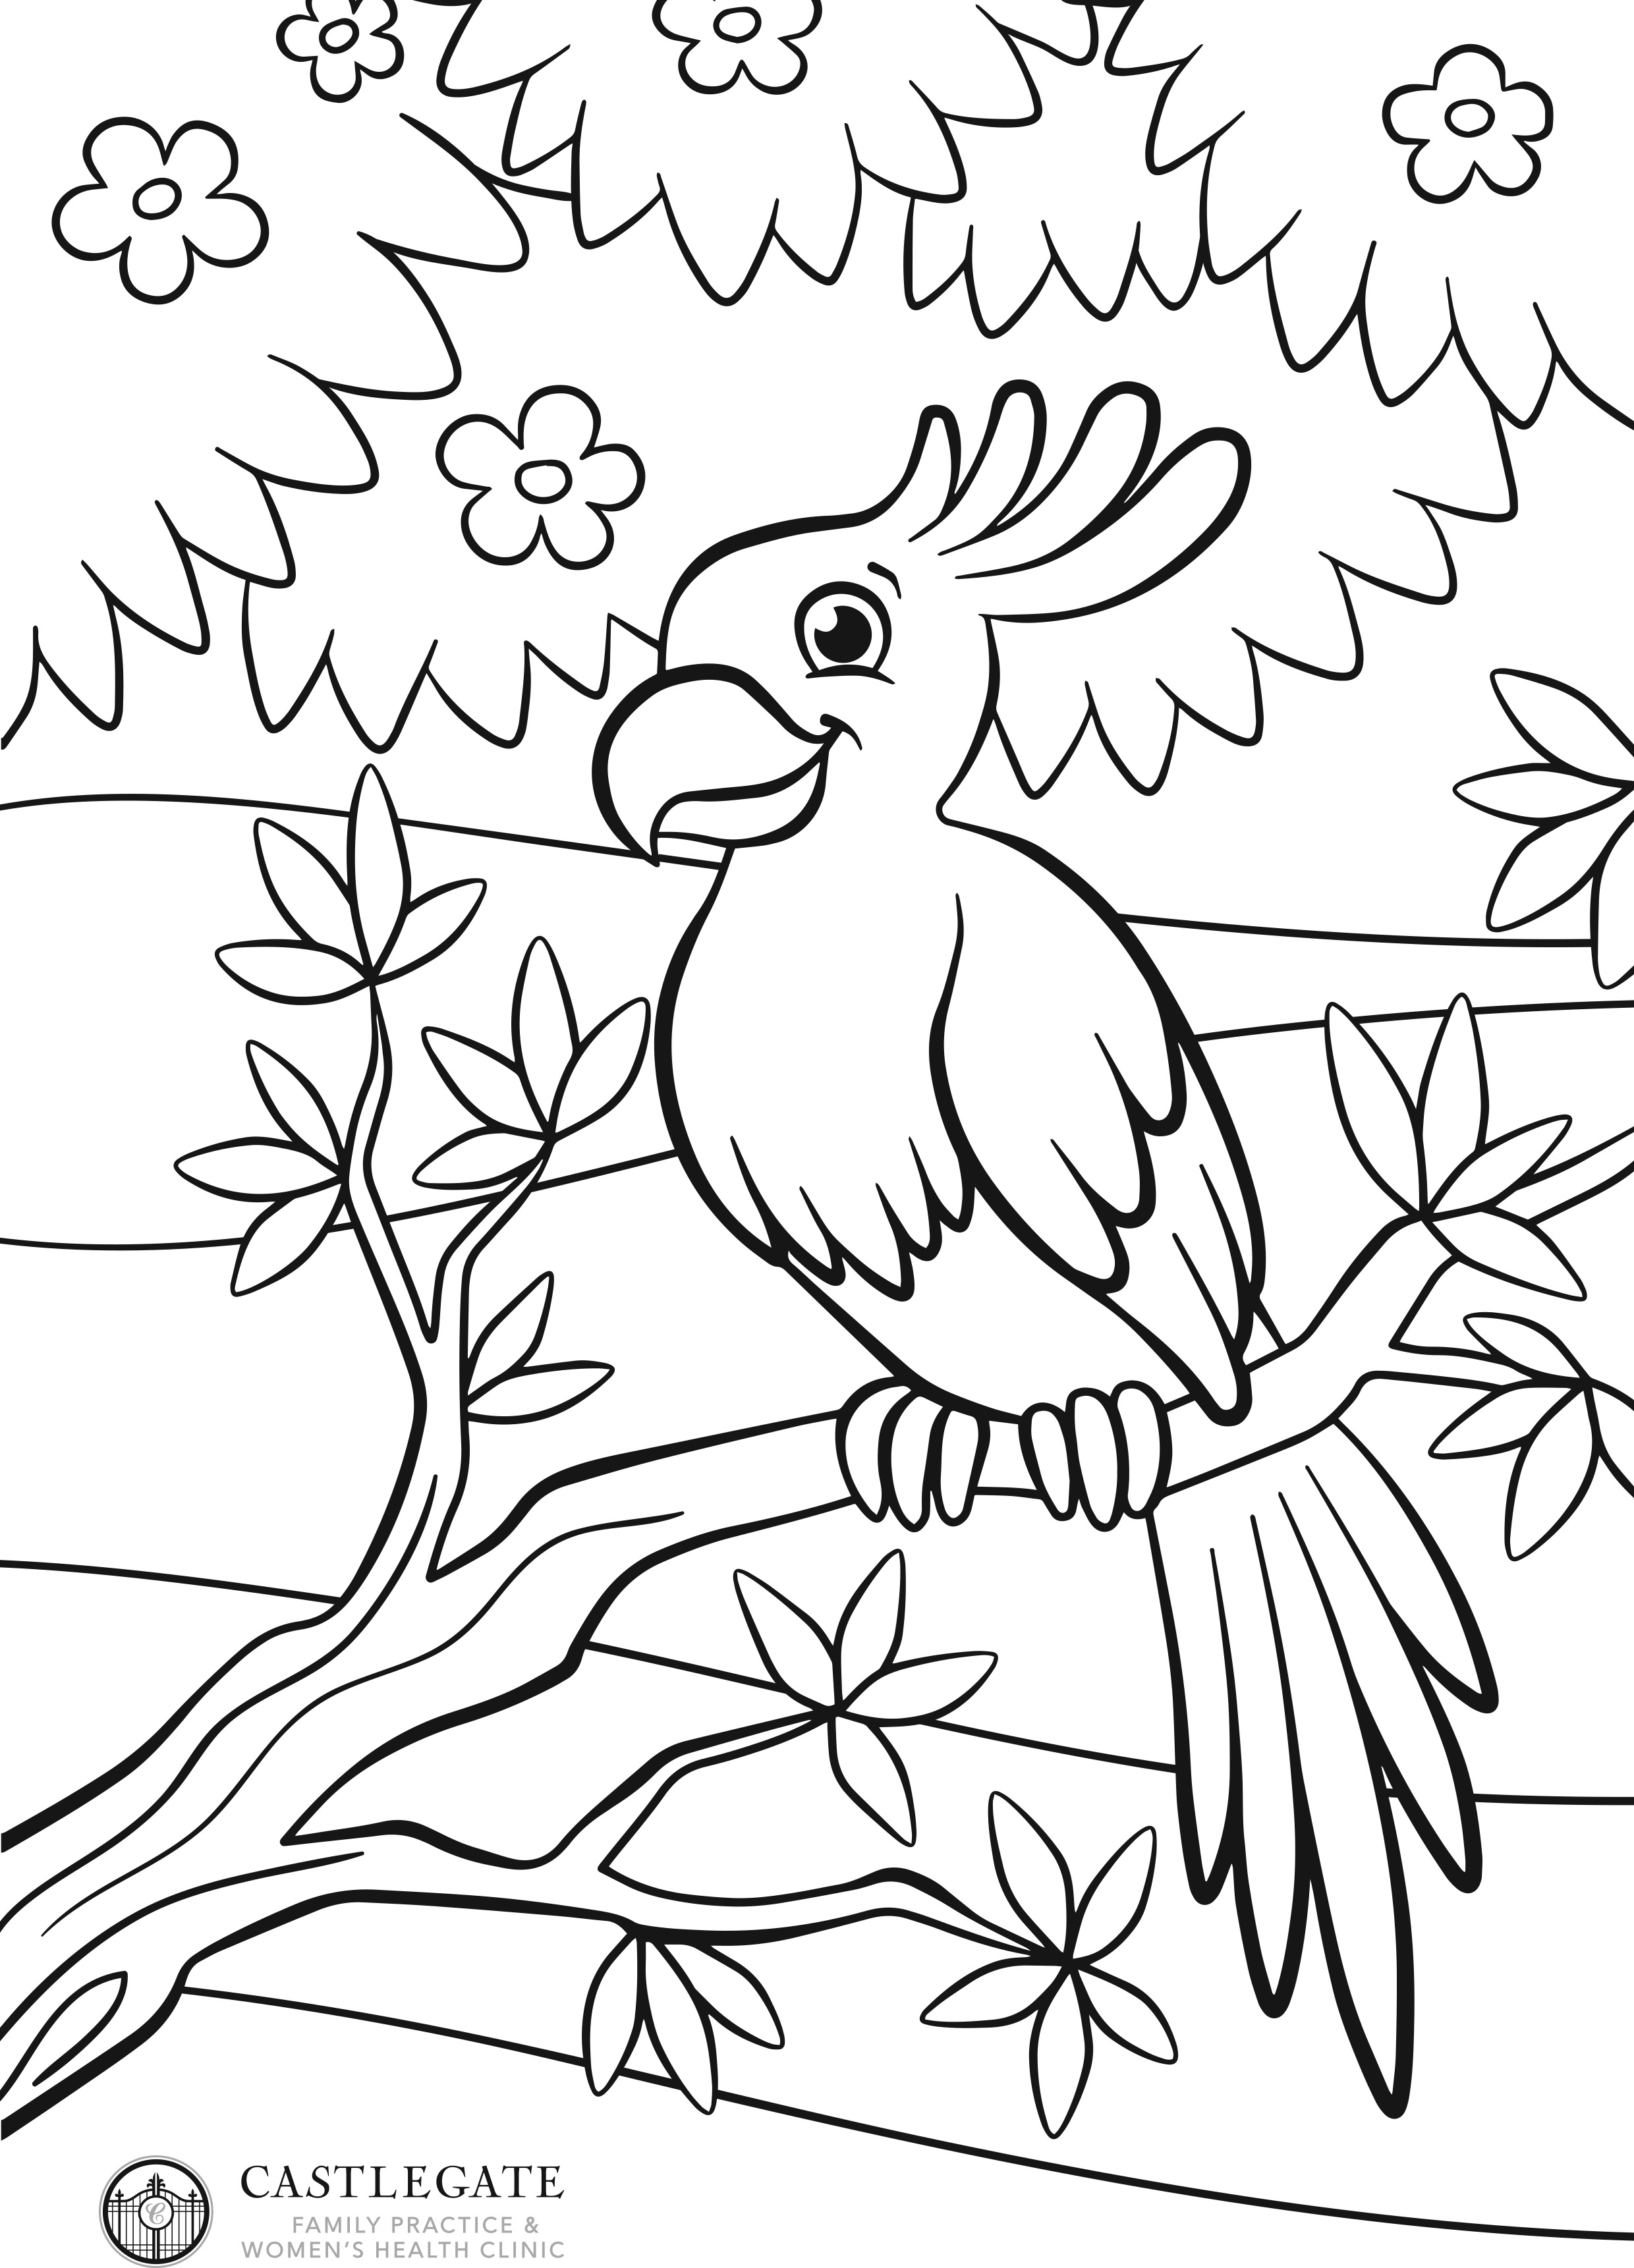 images for coloring for toddlers coloring pages printable for children activity shelter images for toddlers coloring for